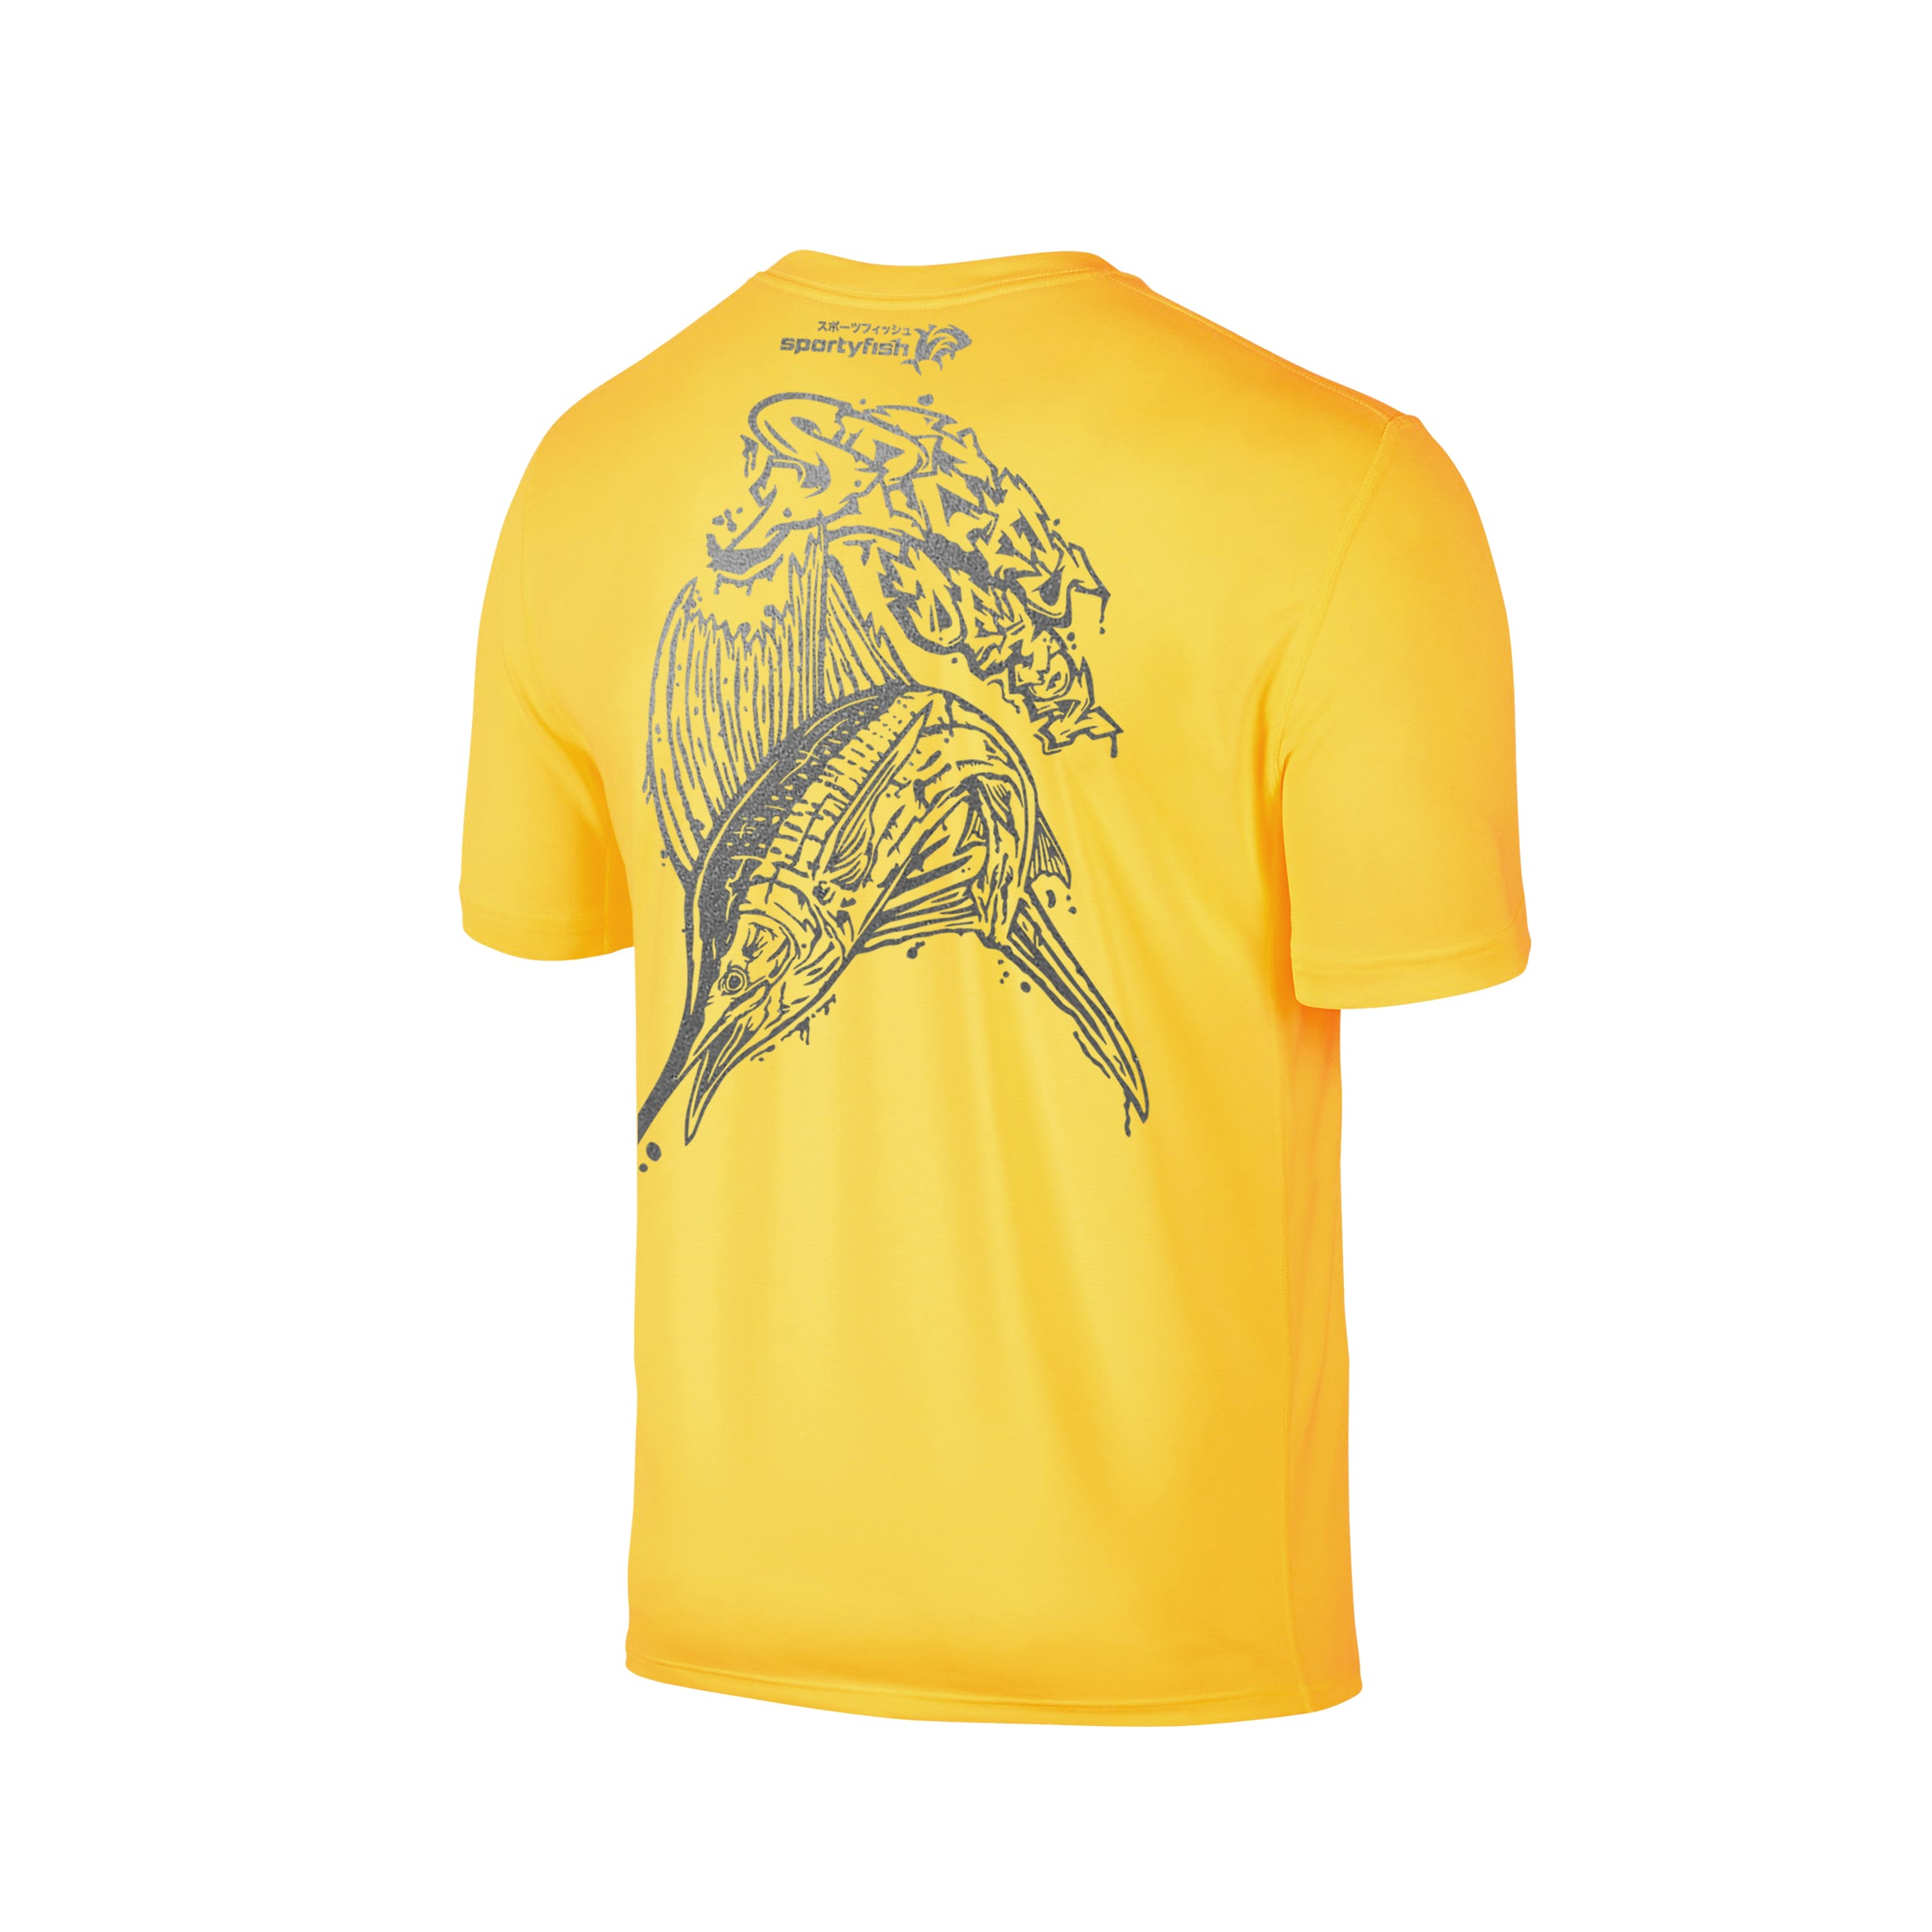 Wildstyle Graffiti Series Yellow T-shirt(back view)Silver: Atlantic Sailfish